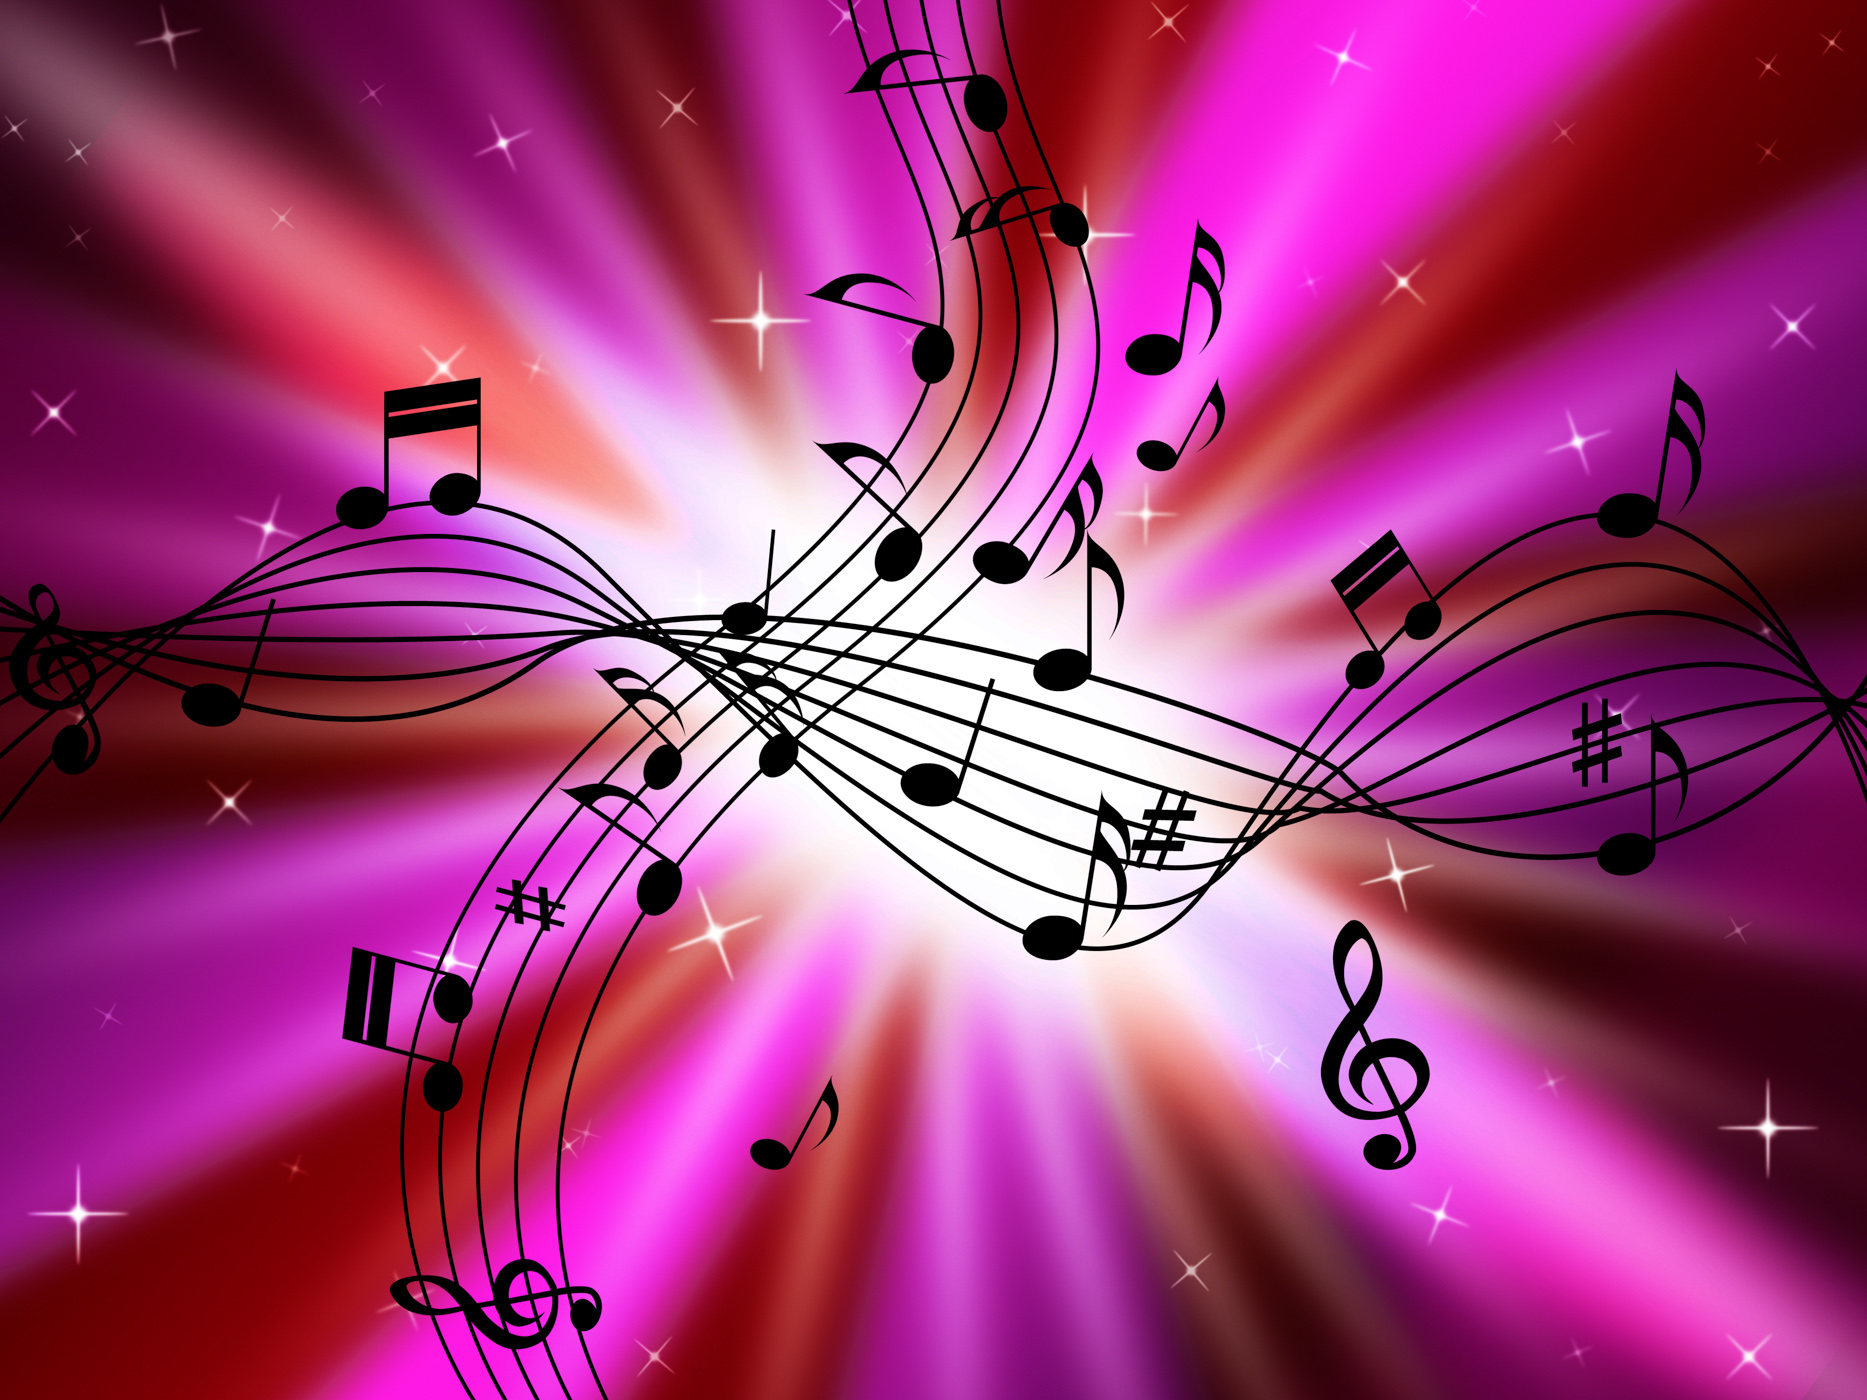 Pink Music Wallpaper: Free Photo: Pink Music Background Shows Musical